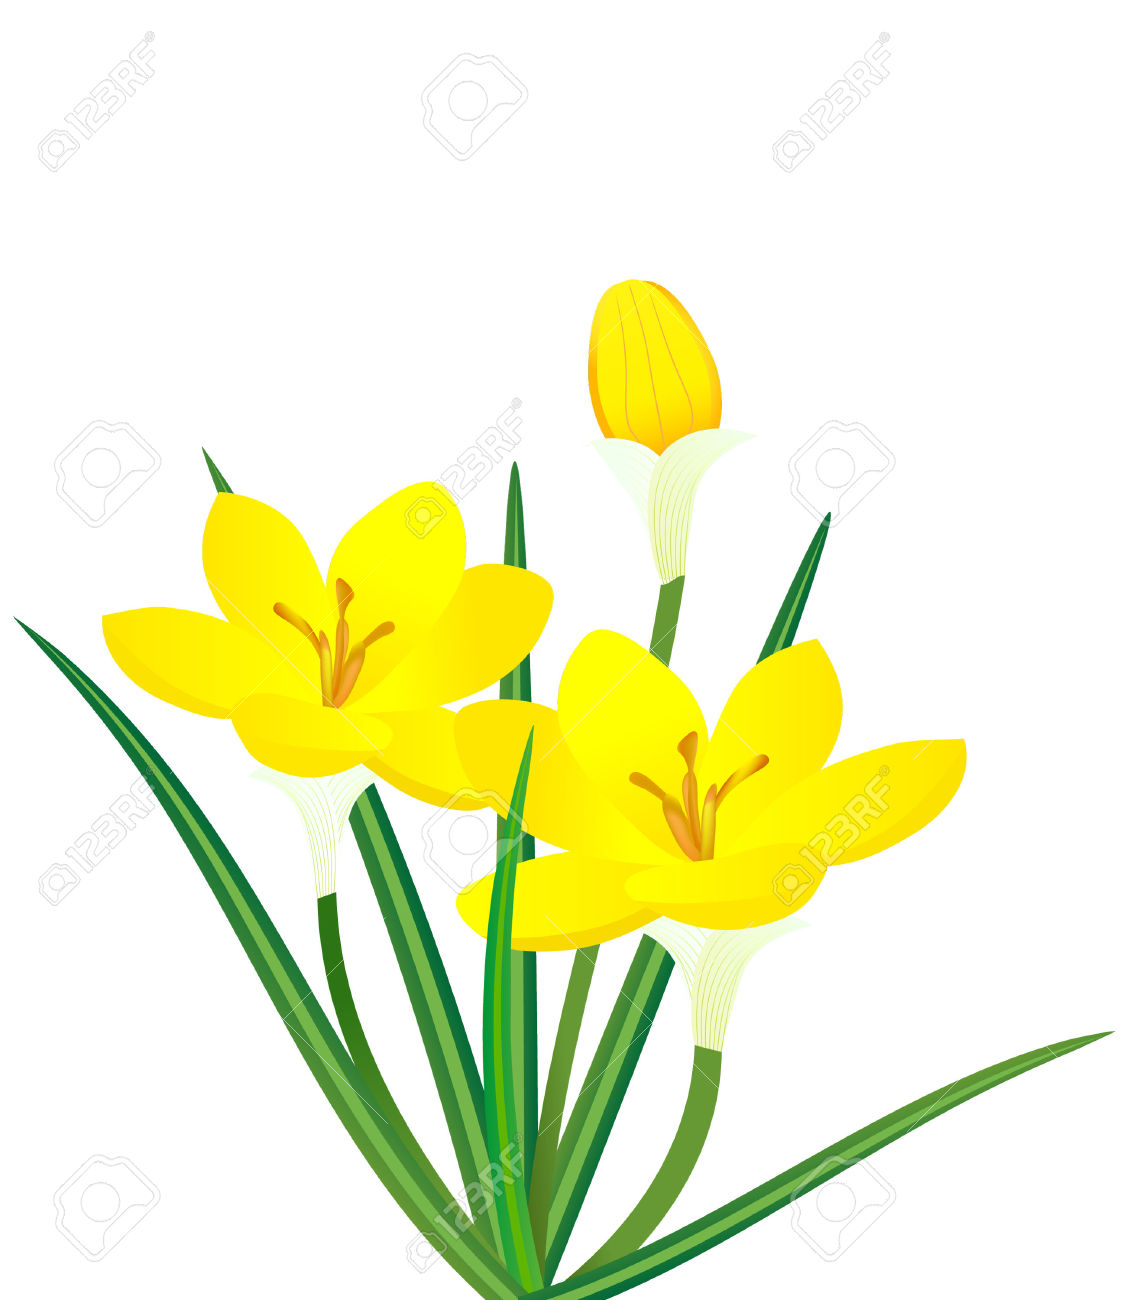 Vector Illustration Of Yellow Crocus Flower Plant Royalty Free.